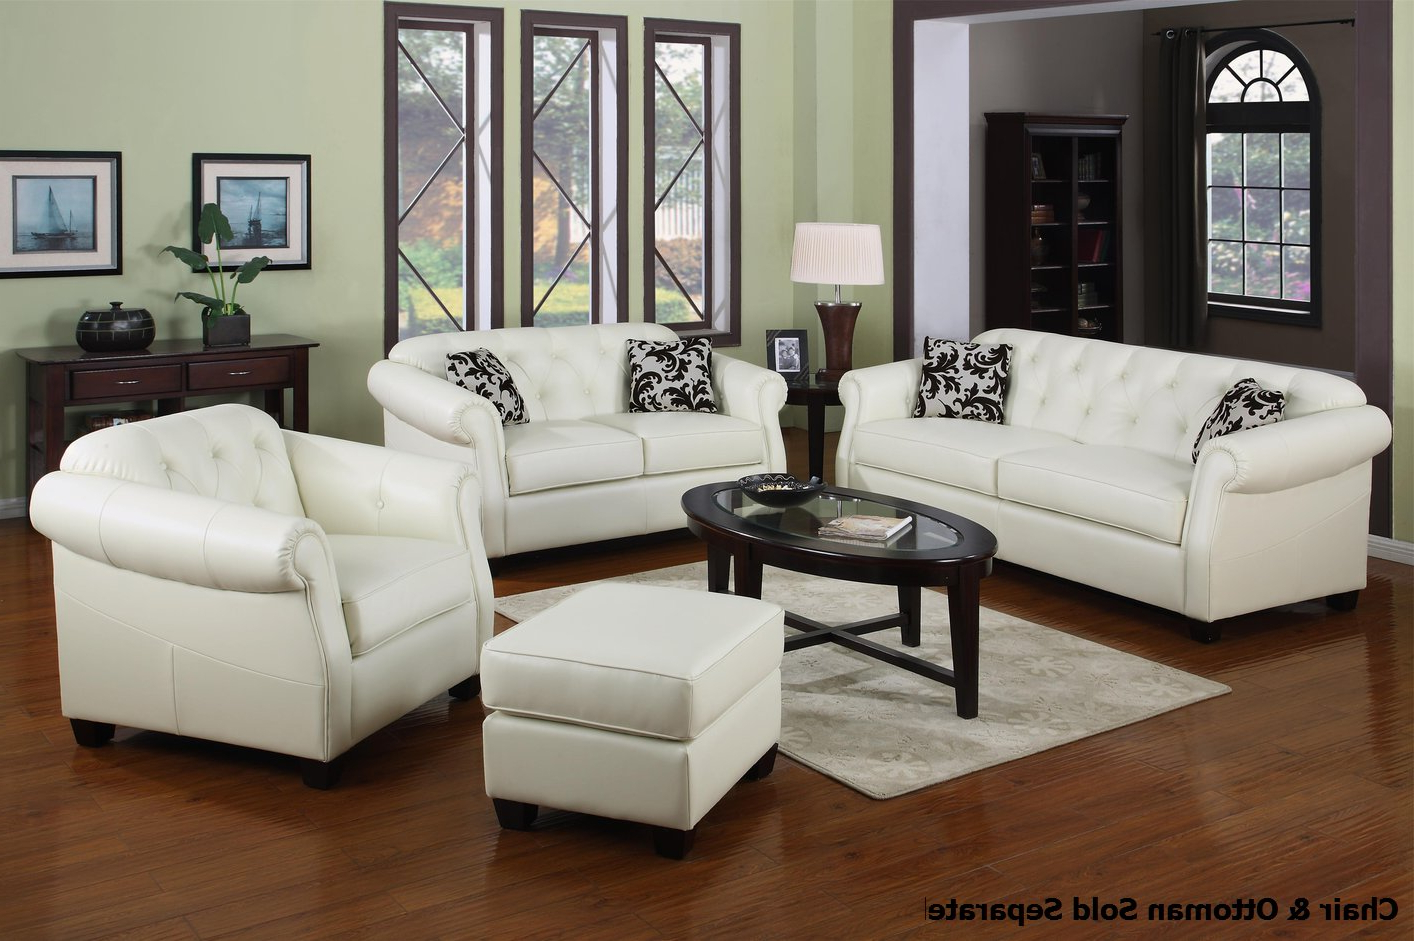 Sofa Loveseat And Chairs Regarding Trendy Kristyna White Leather Sofa And Loveseat Set – Steal A Sofa (Gallery 17 of 20)